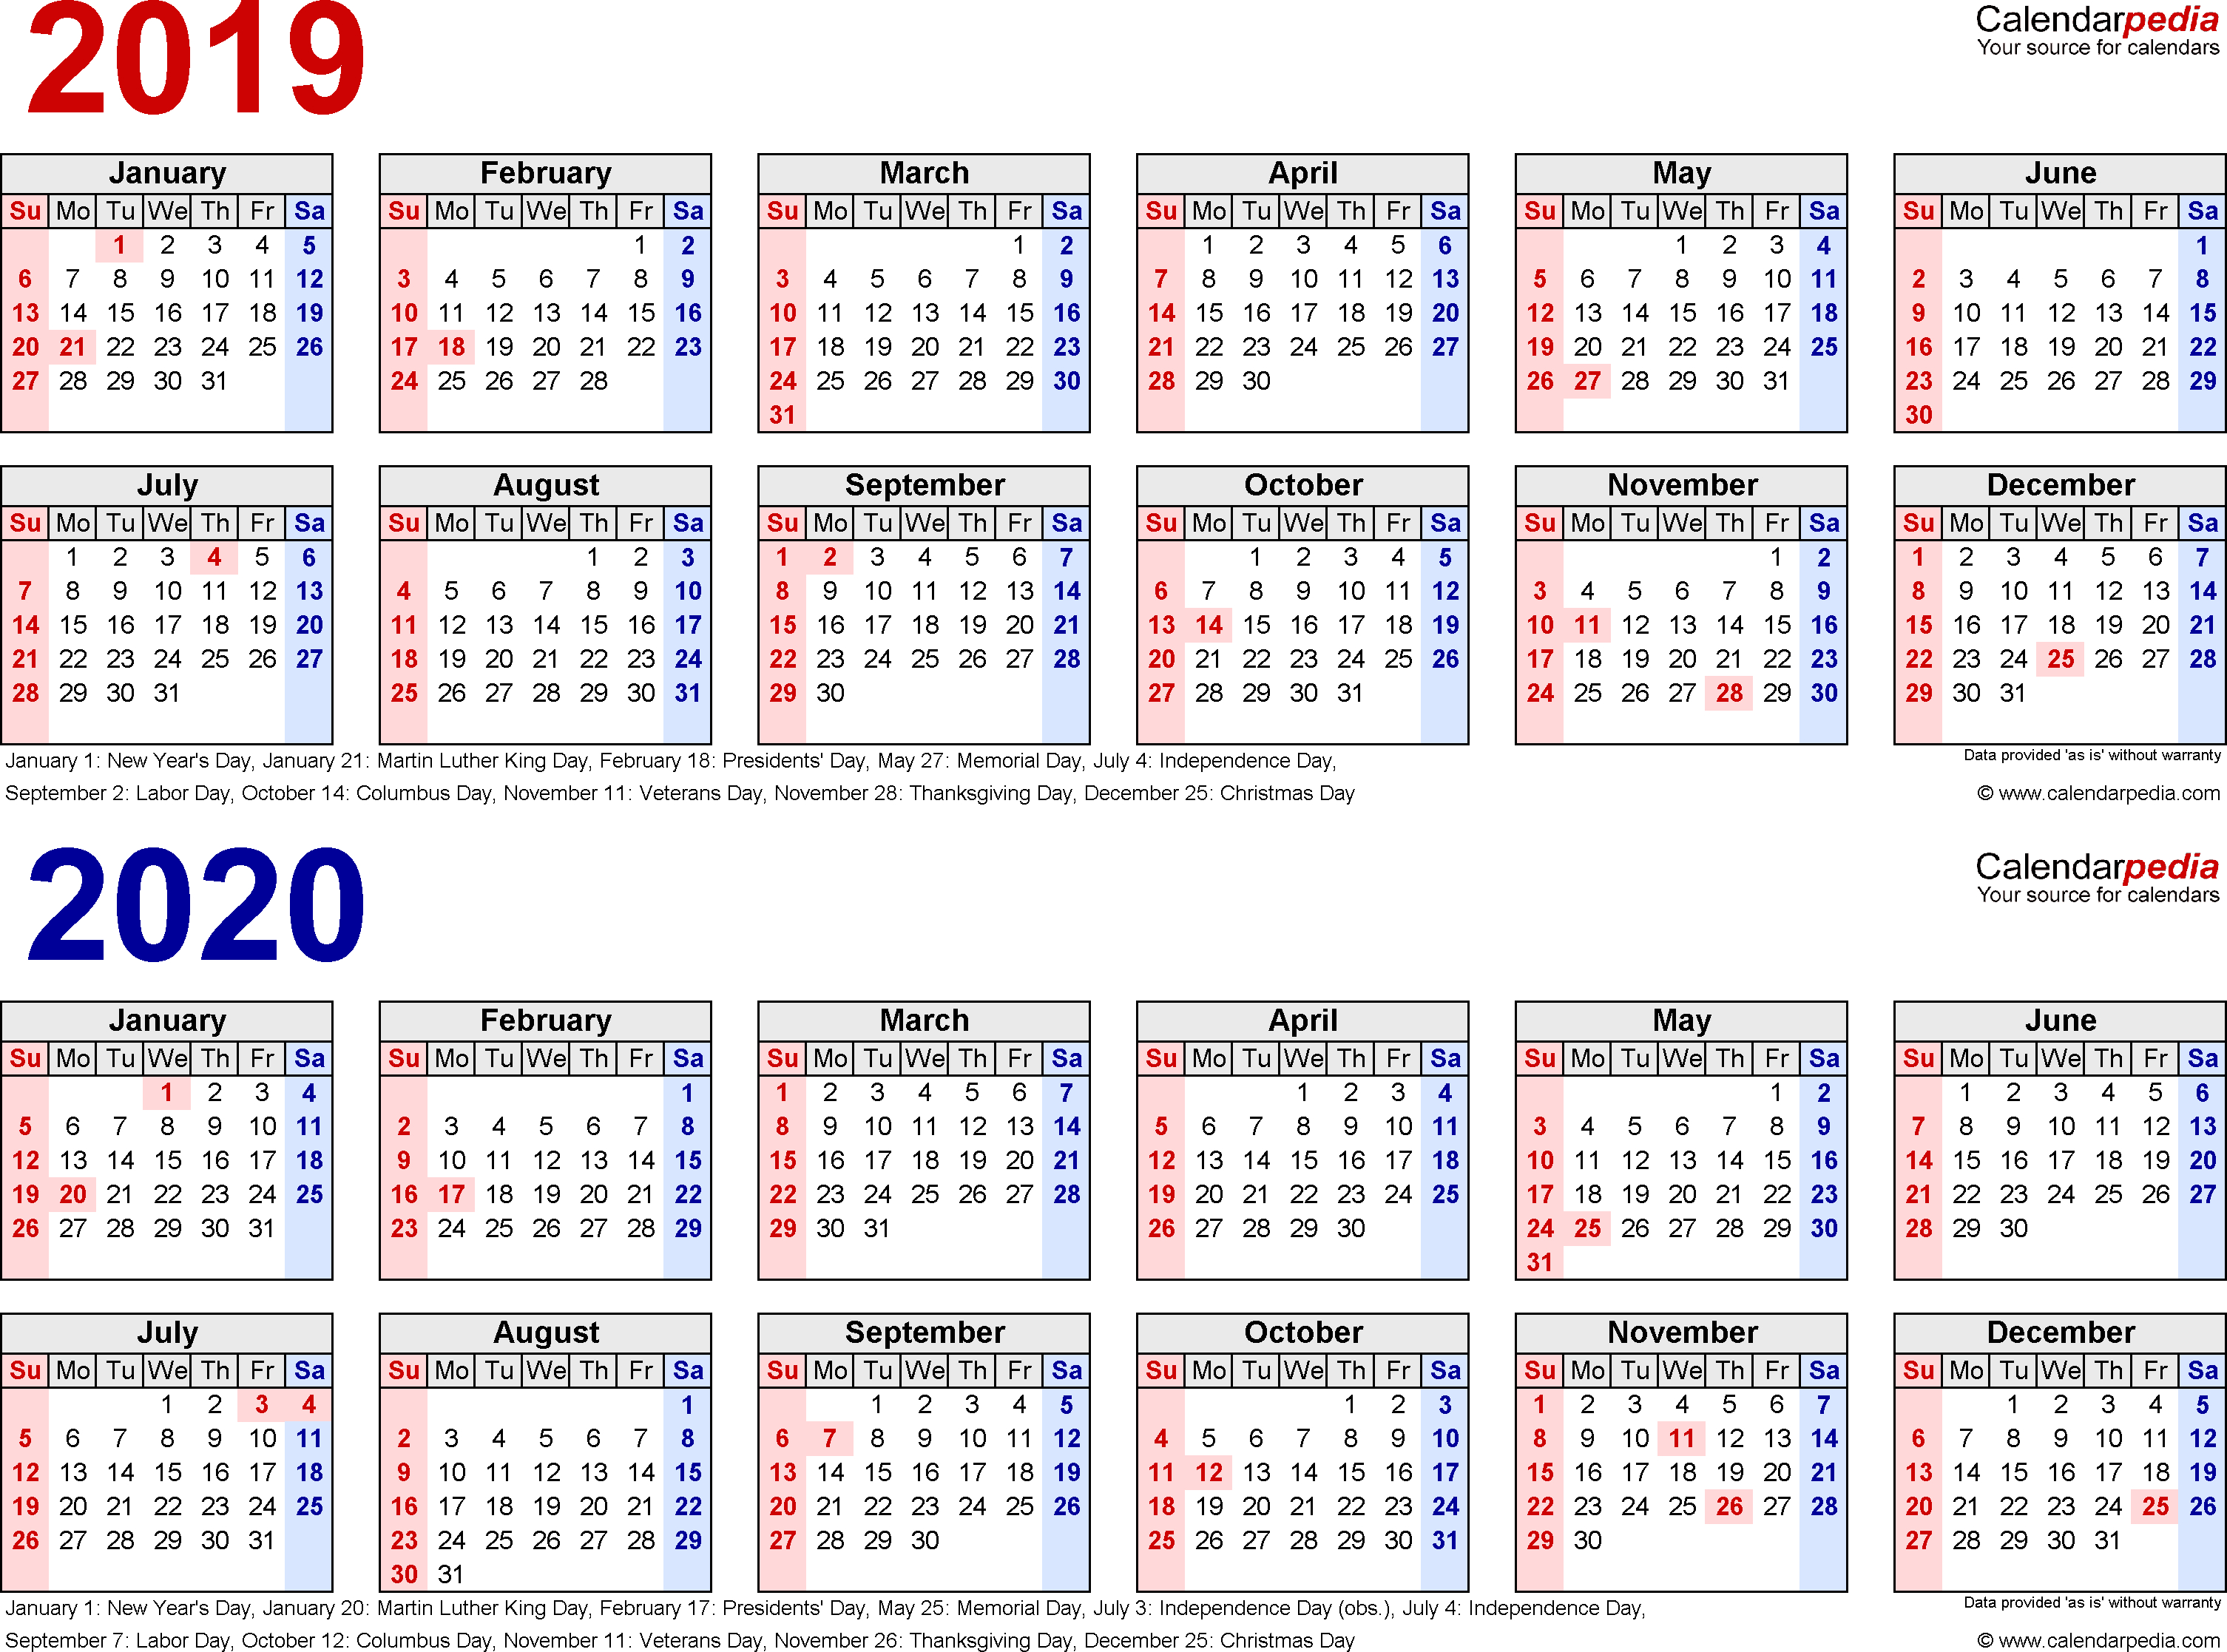 2019-2020 Calendar - Free Printable Two-Year Pdf Calendars within Free Printable Calendar 2019 To 2020